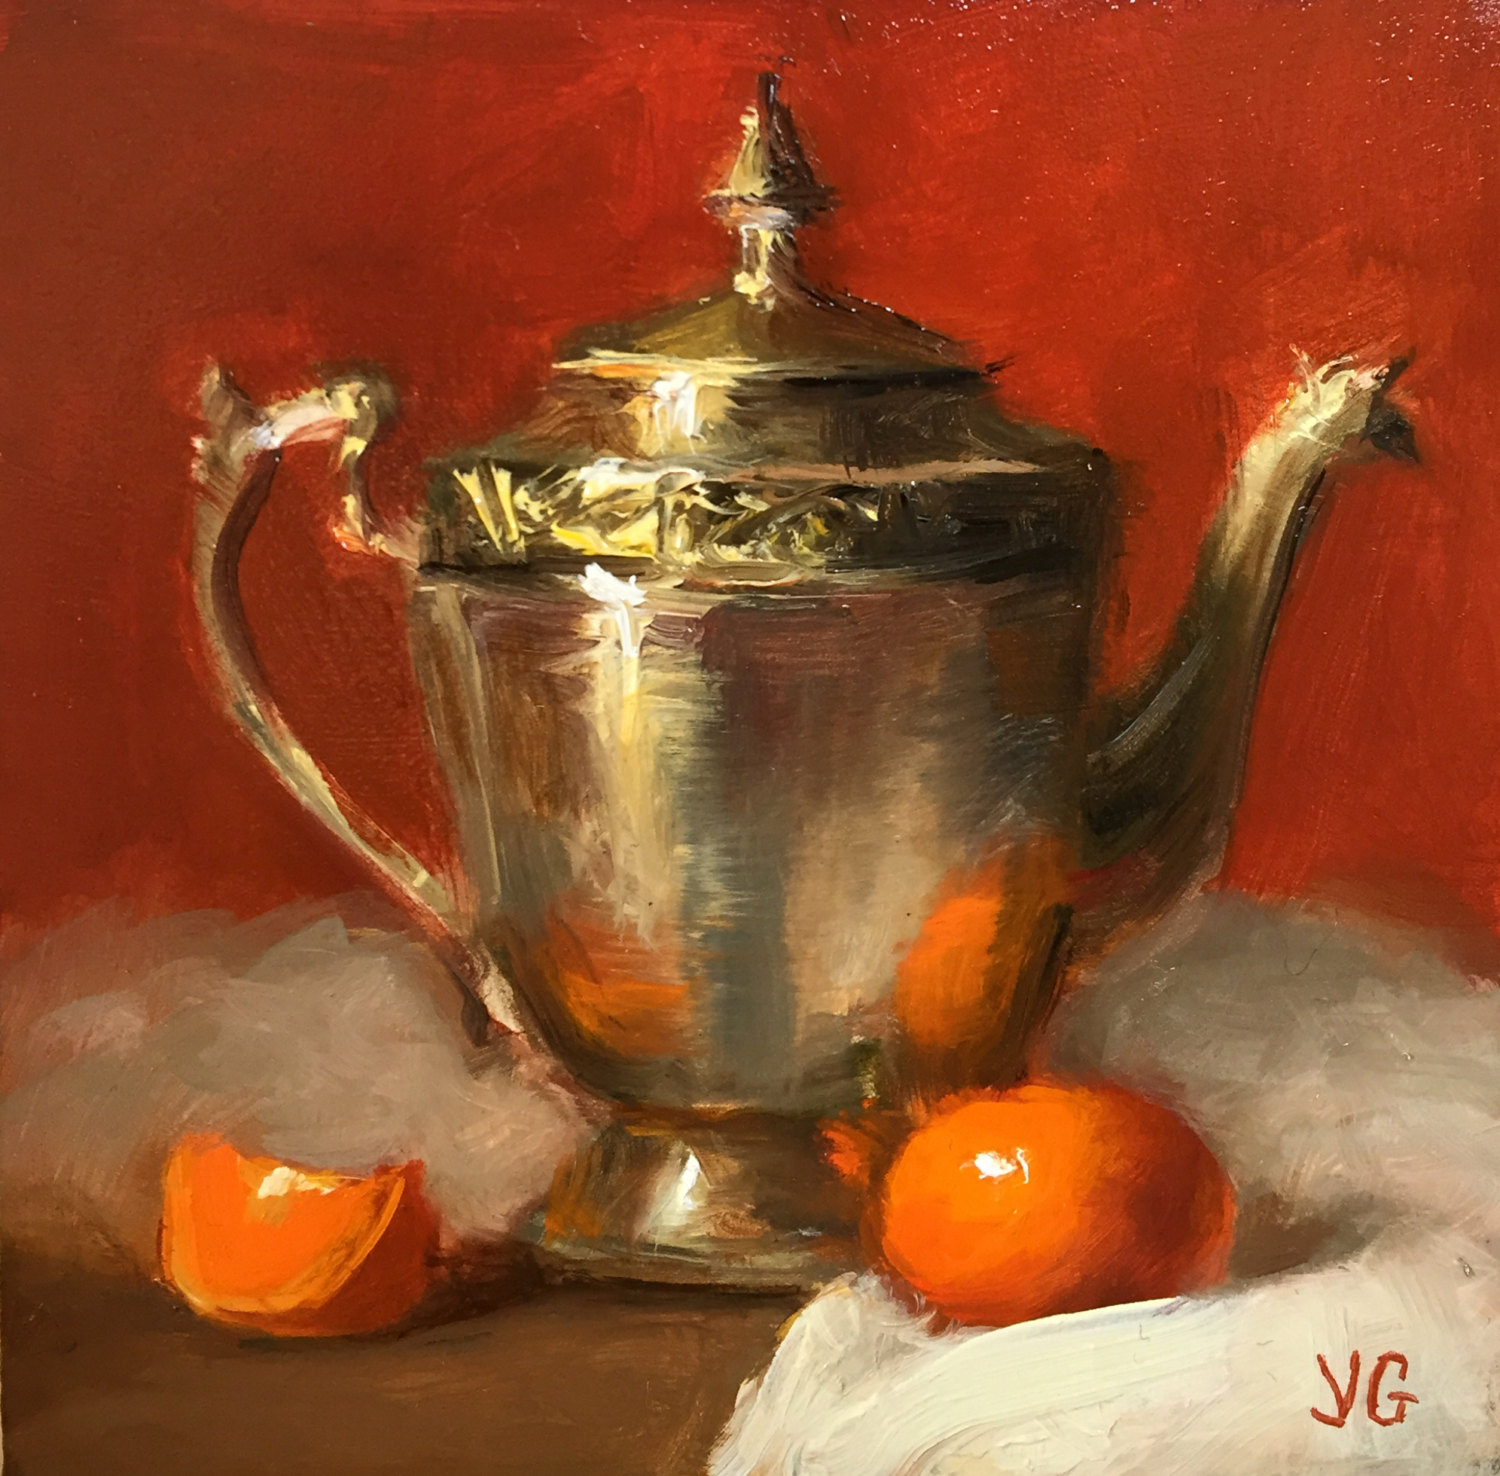 Metal Pitcher and Mandarins 5x5 Oil on board